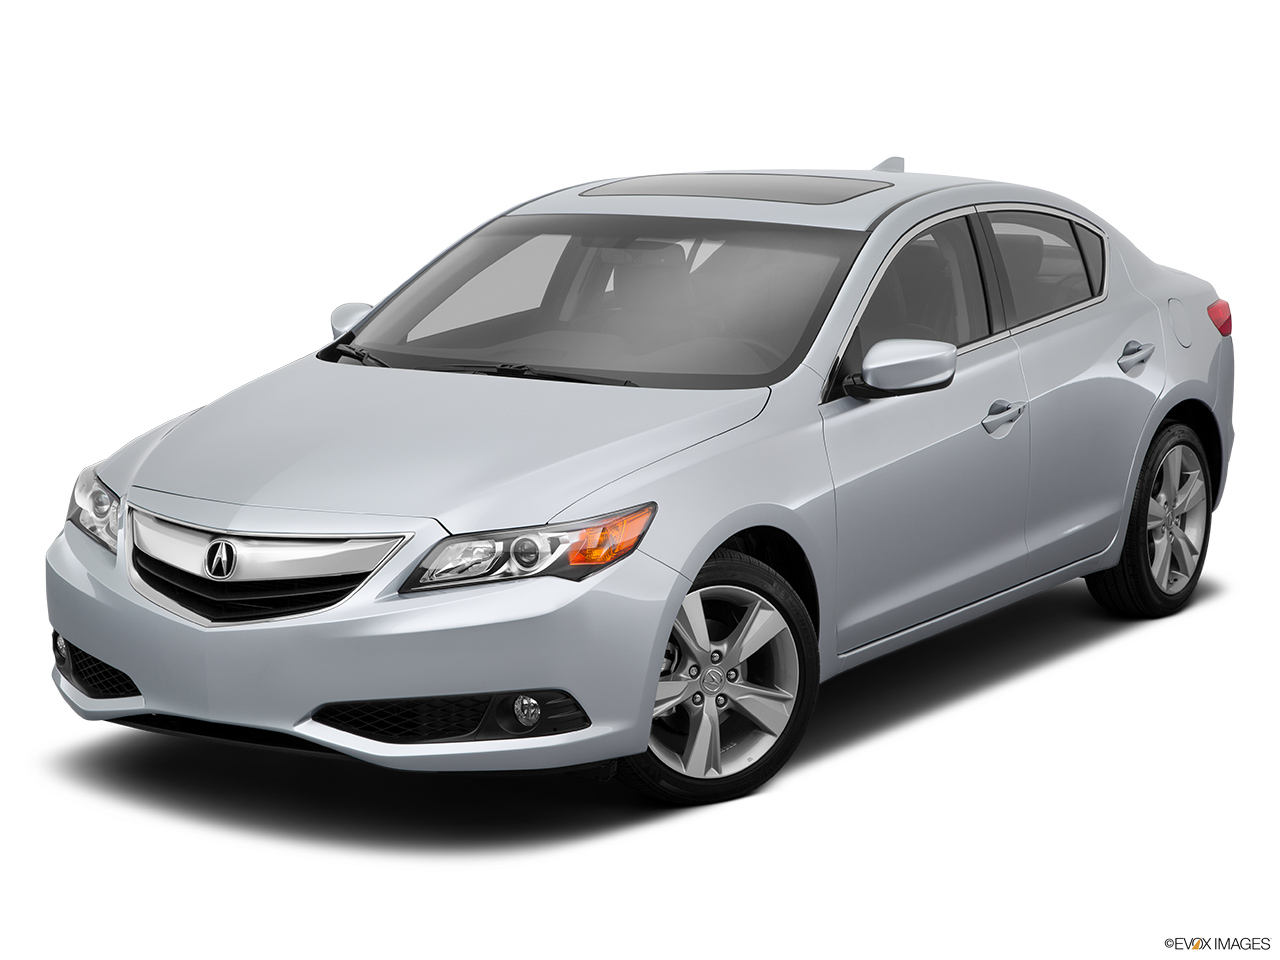 sedan technology reviews hybrid motor trend acura ilx rating and cars panel instrument